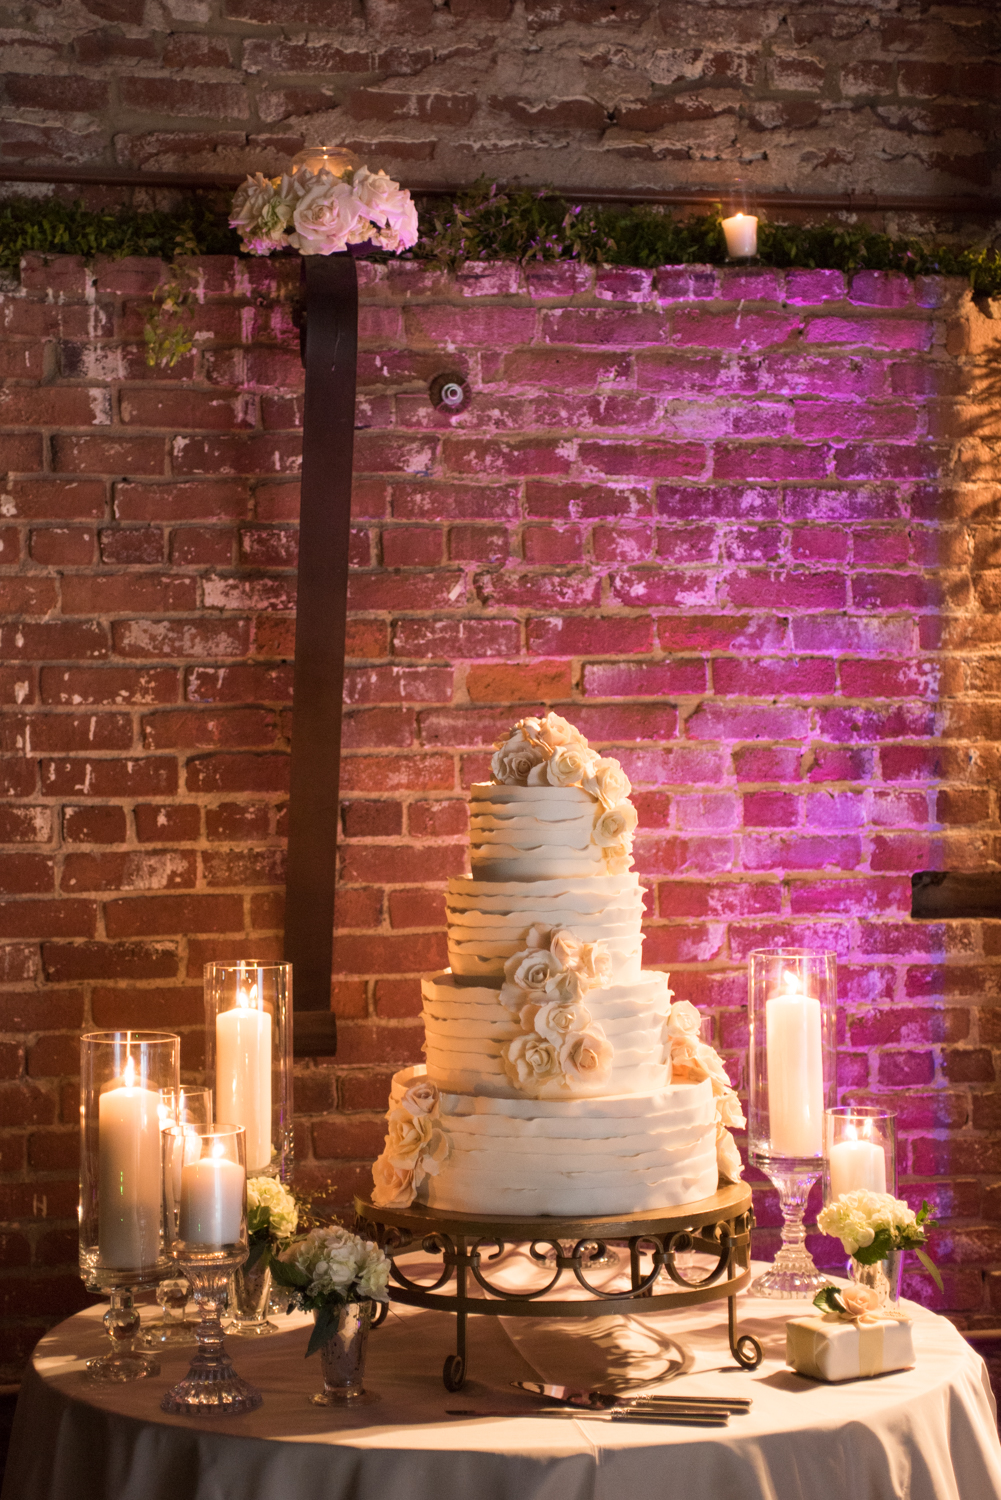 Four tier couple's cake, white ribbons decorated with buttercream roses made by Susan Morgan; Sylvie Gil Photography